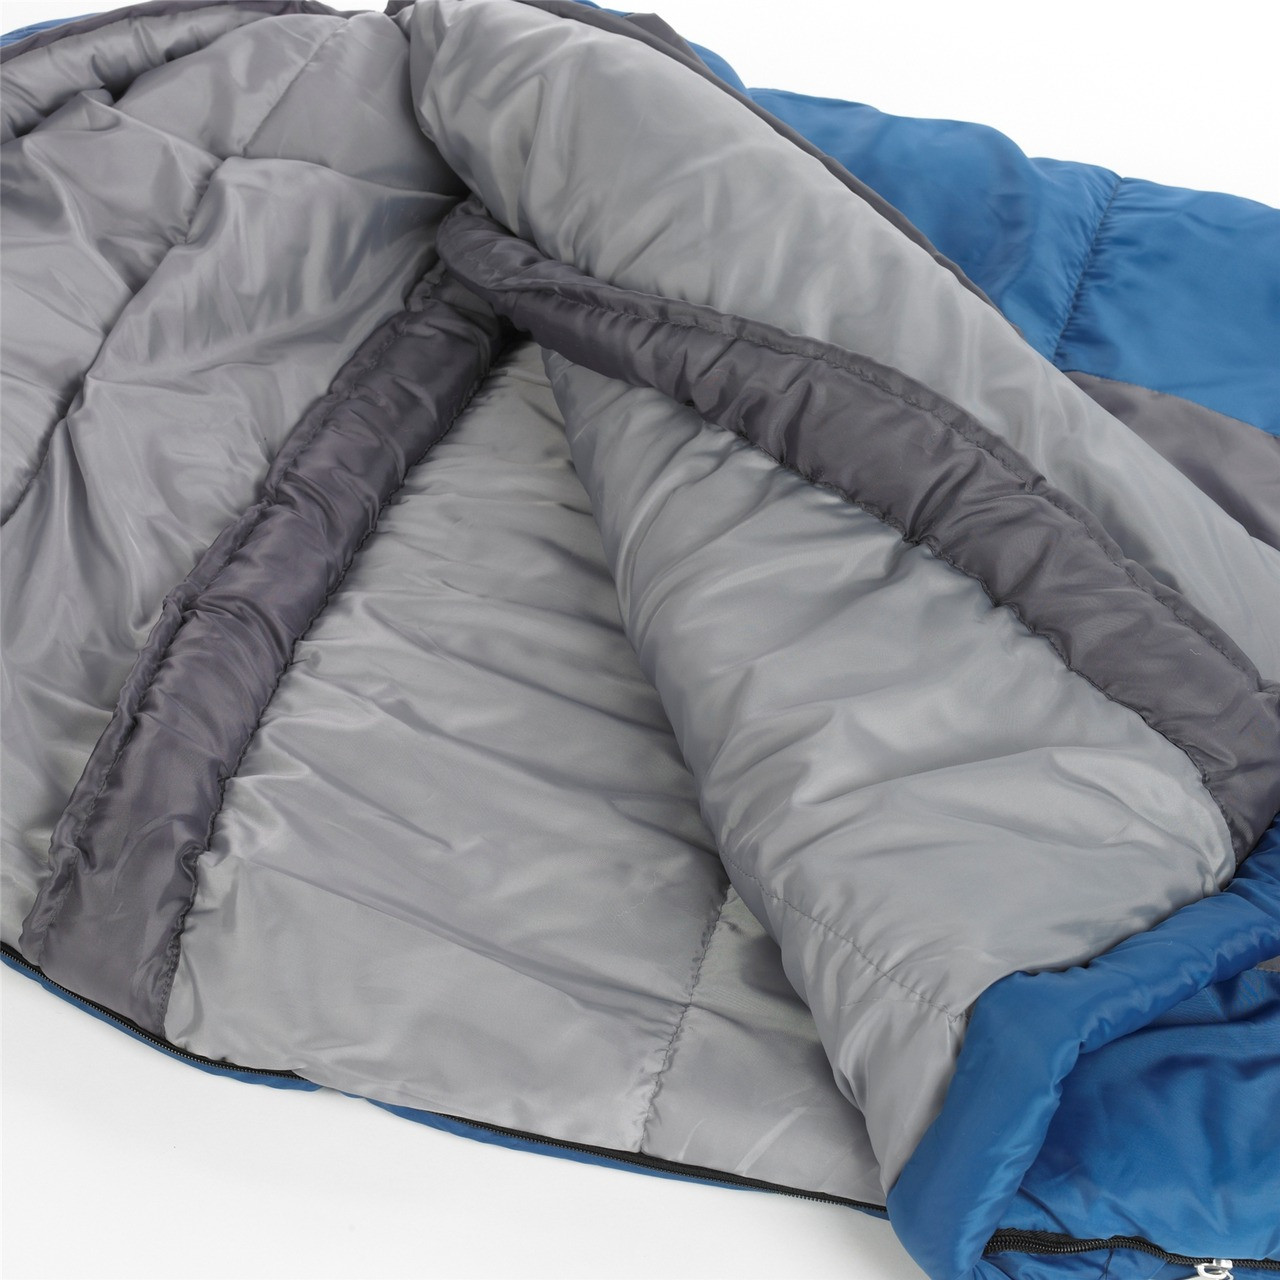 Close up view of the Wenzel Santa Fe Mummy 20 degree sleeping bag partially folded open showing the gray draft collar